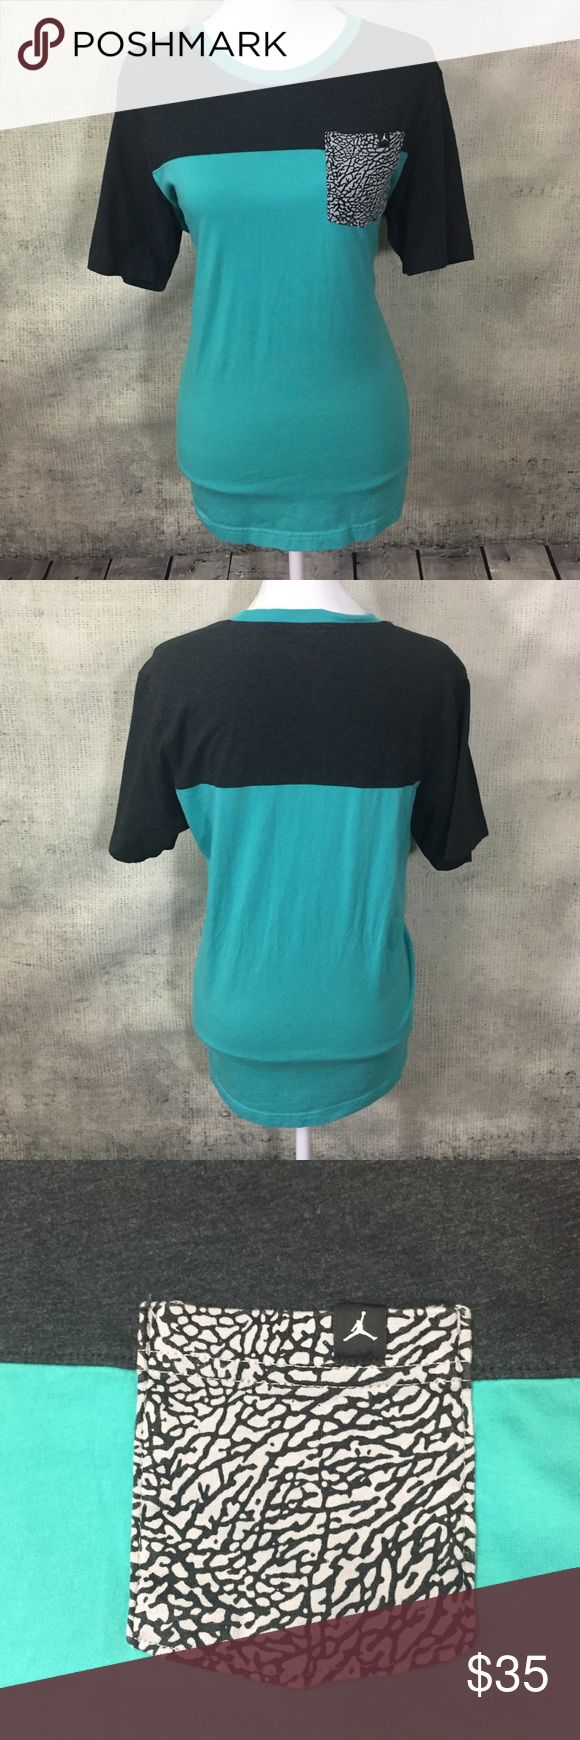 """Nike Jordan Elephant Print Teal Grey Tee Shirt Measurements - In inches, taken flat and are approximate (double where appropriate):  20"""" chest, 26 length Size L. Jordan Shirts Tees - Short Sleeve"""